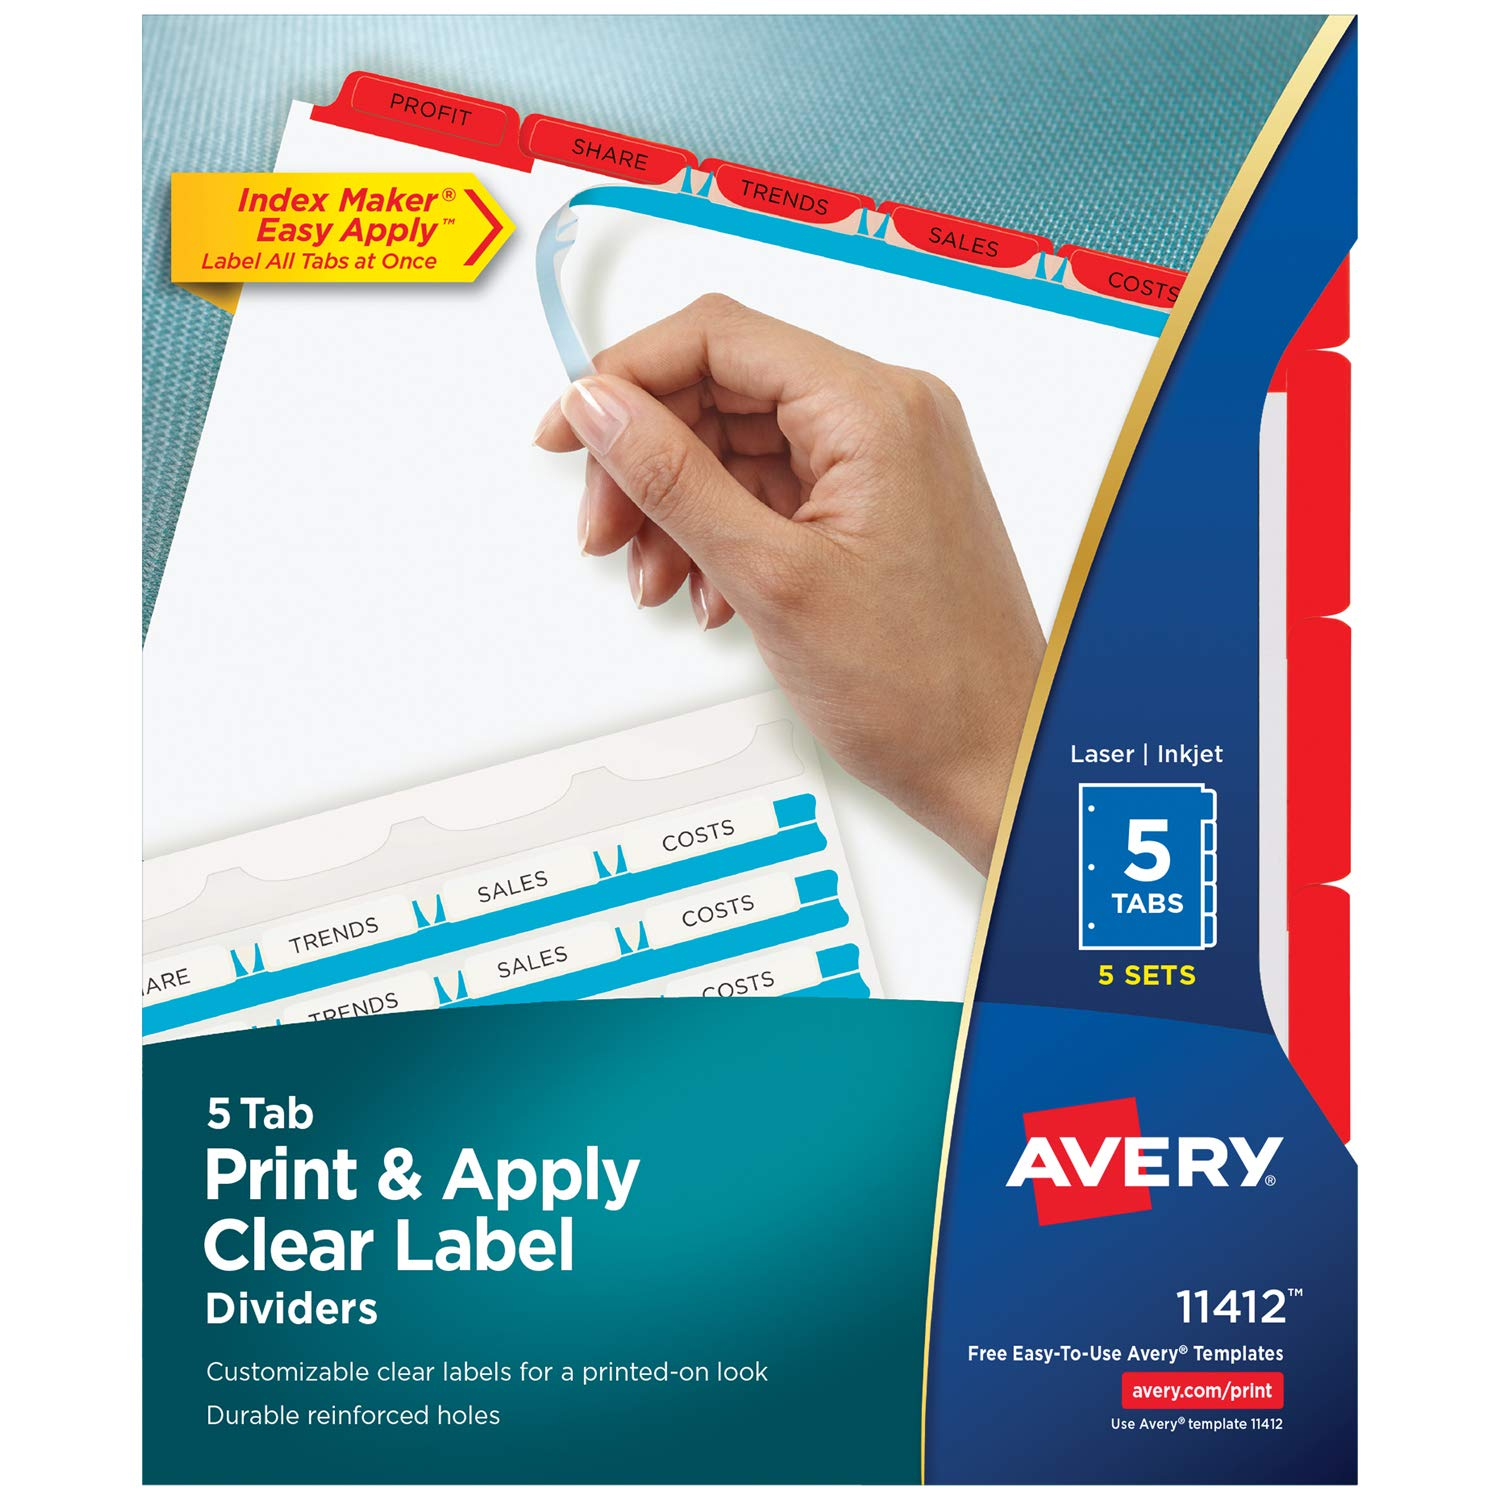 Index Maker(R) Print & Apply Clear Label Dividers with Traditional Color Tabs, 8-1/2'' x 11'', 5 Tab, Red Tab, White Body, Laser/Inkjet, 5 Set/PK